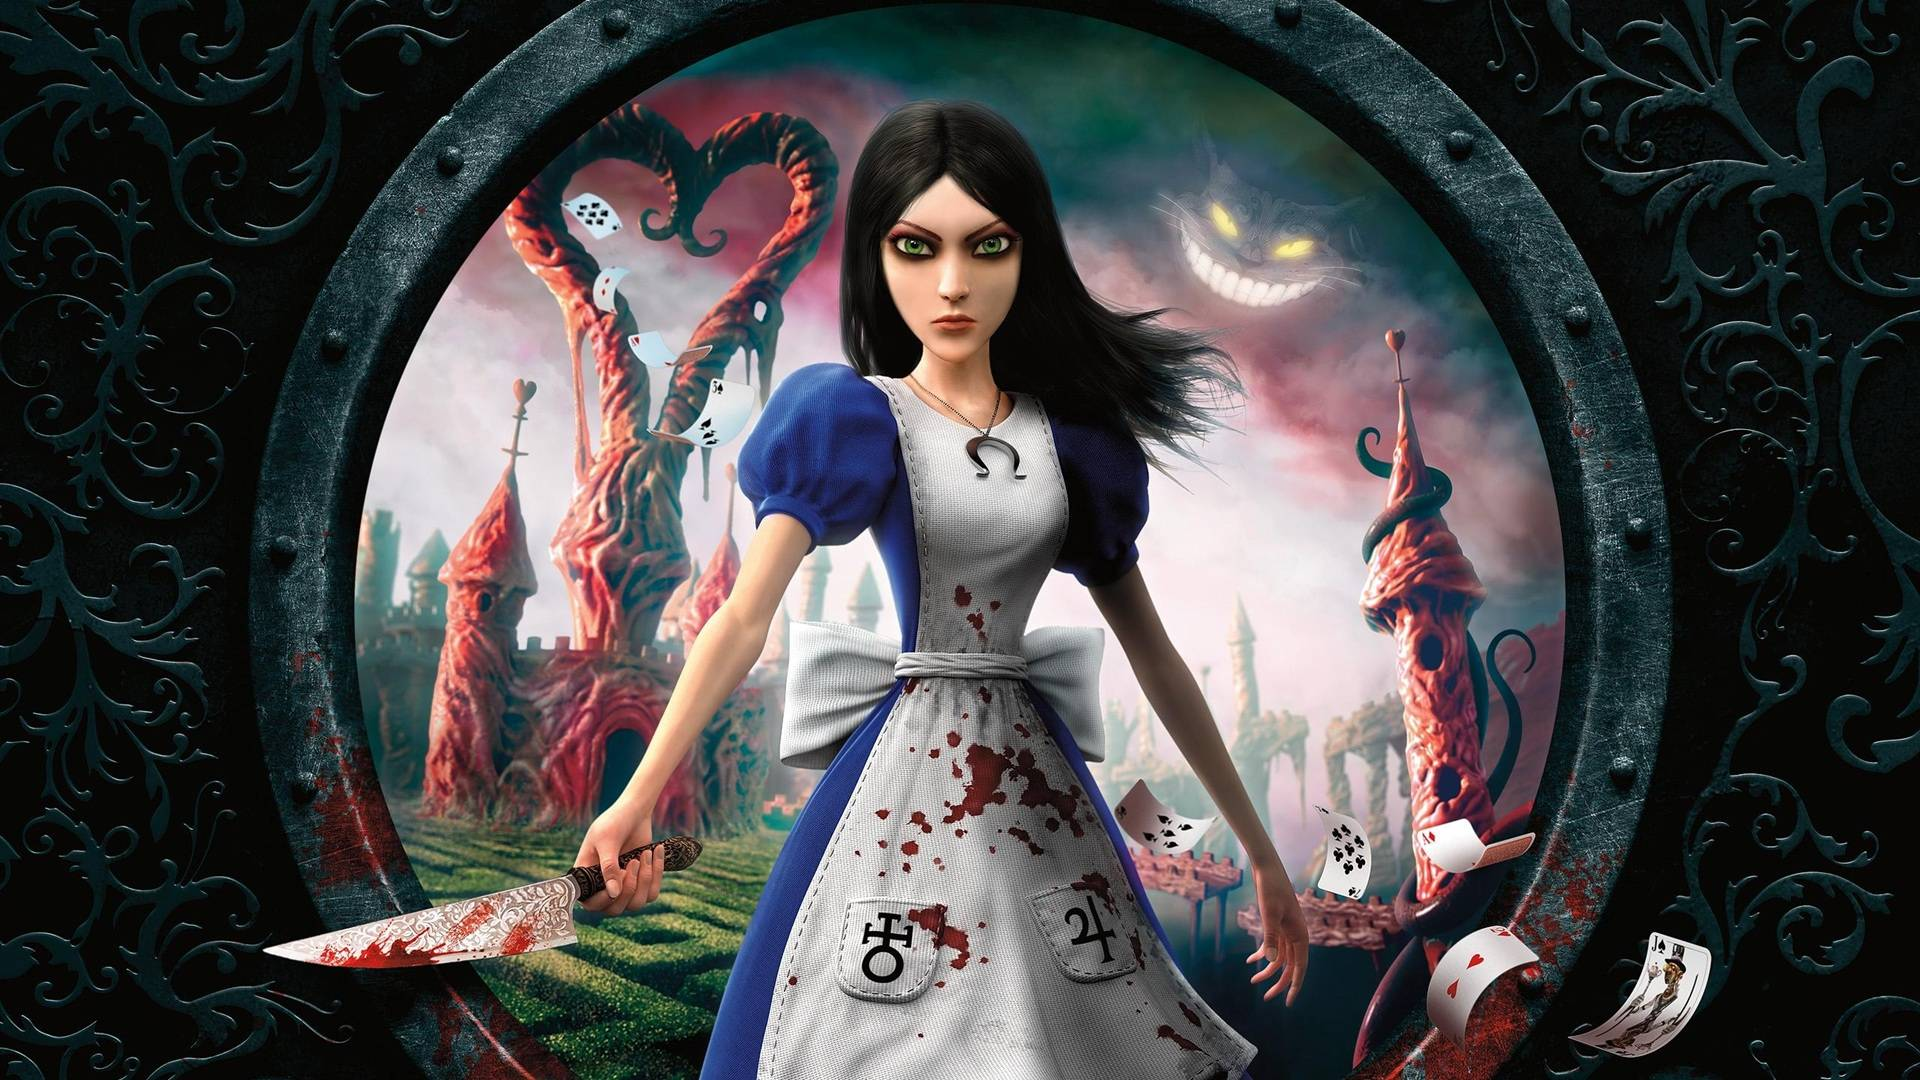 alicemadnessreturnsposter - American McGee Uploads Rare Animatics From Alice: Madness Returns